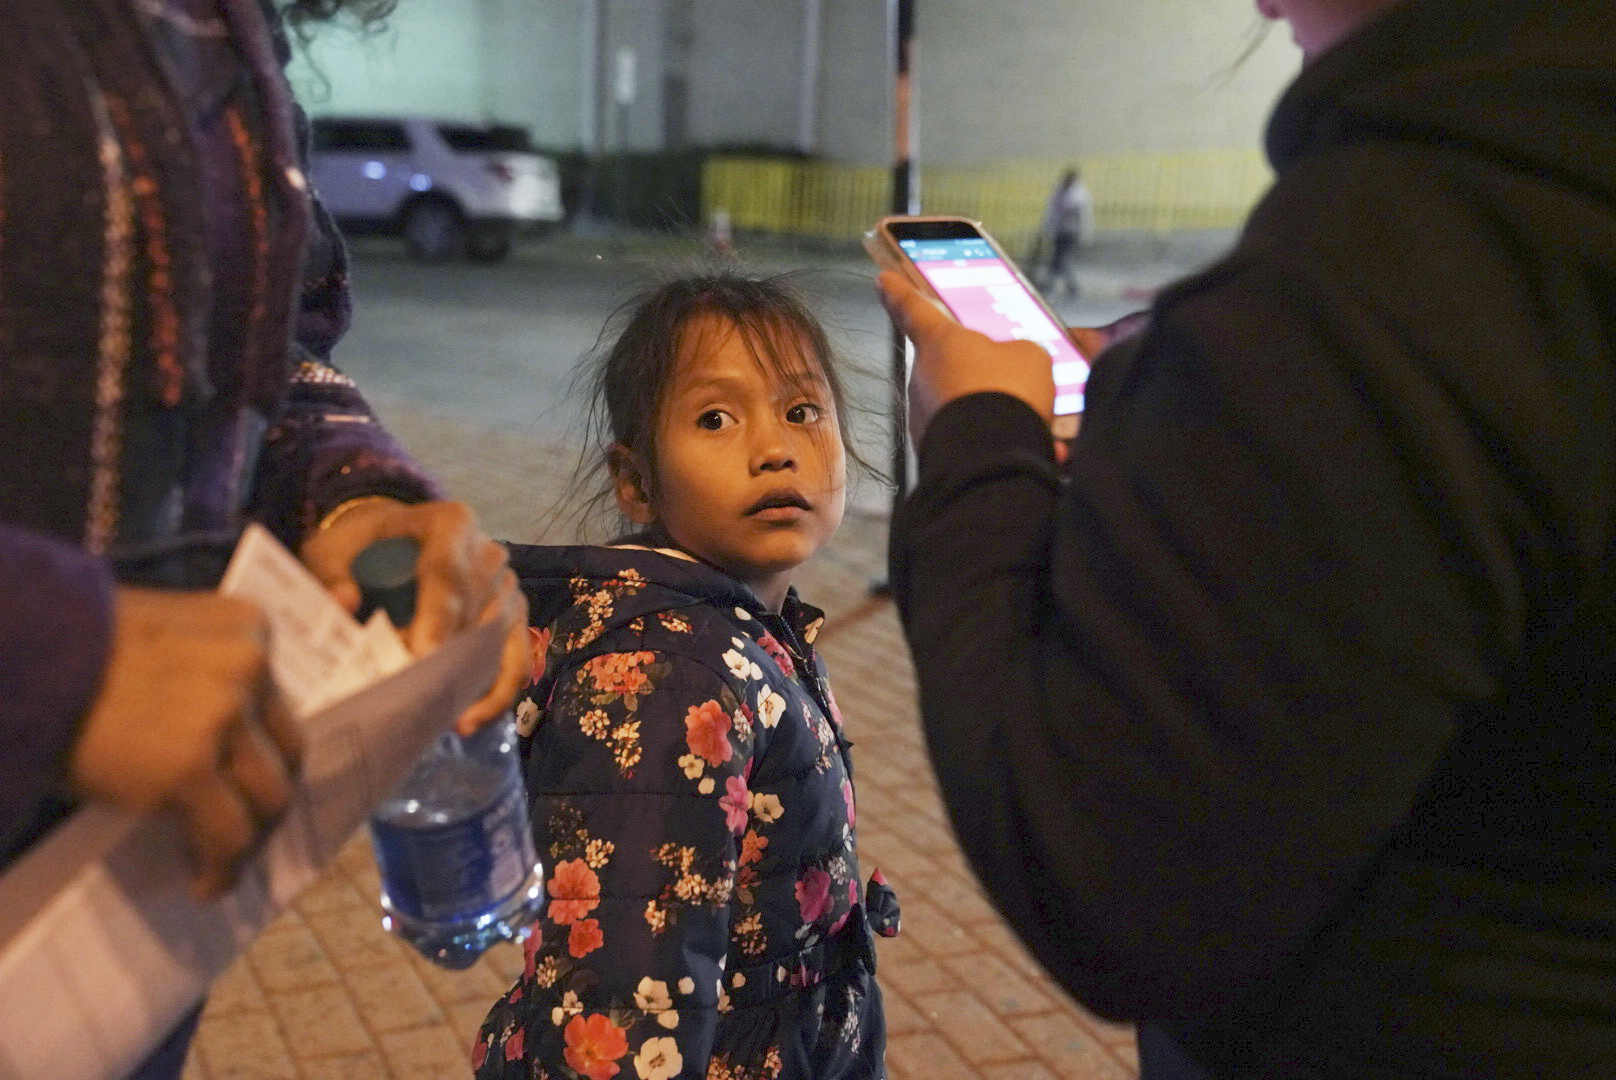 A 7-year-old asylum-seeker waits as her mother Isabel, right, and immigration lawyer Charlene D'Cruz, left, as they figure out where they will be spending the night after being processed at the Port of Entry in Brownsville, Texas, on Dec. 17, 2019.